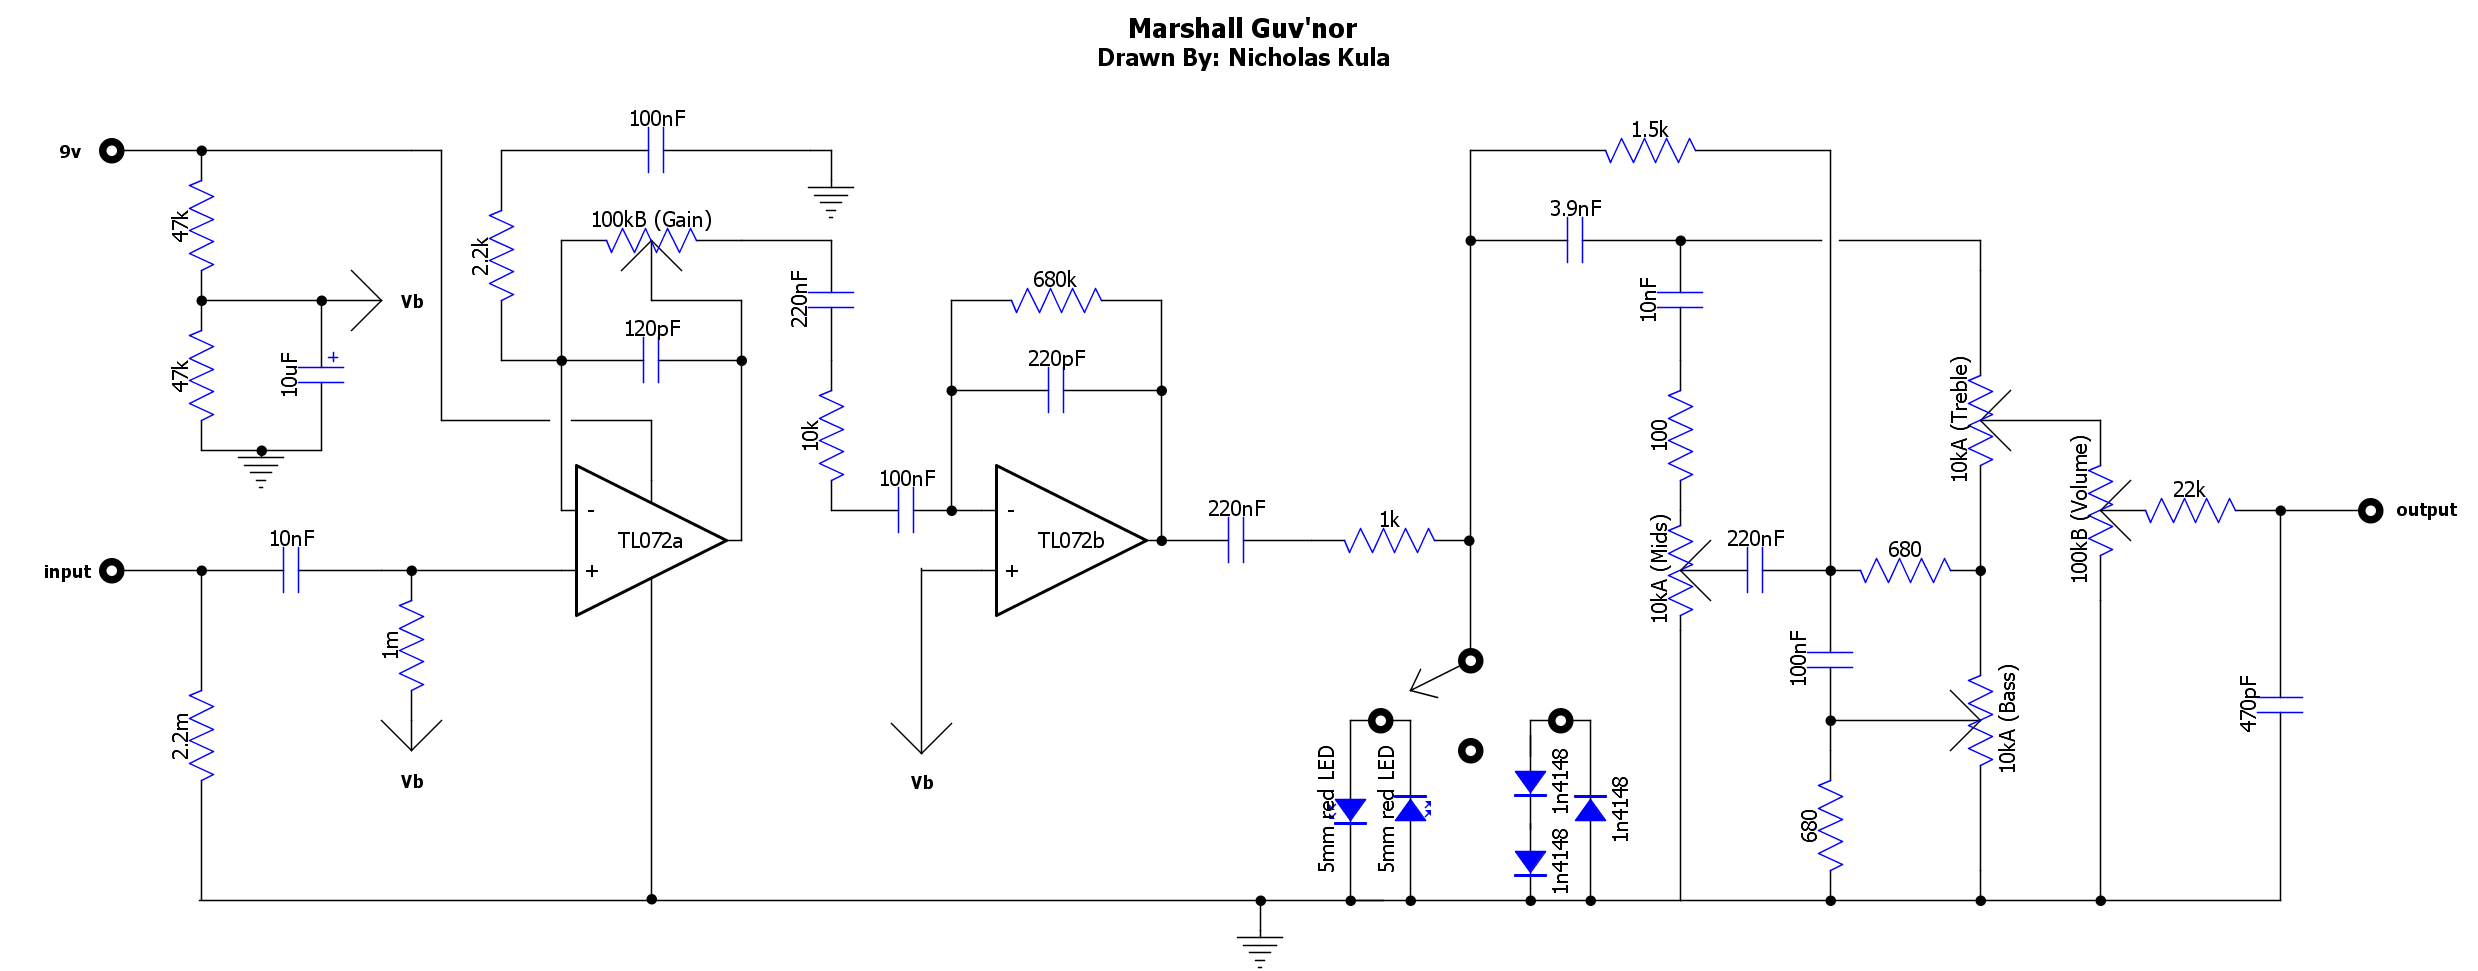 Build Your Own Marshall The Guv U2019nor